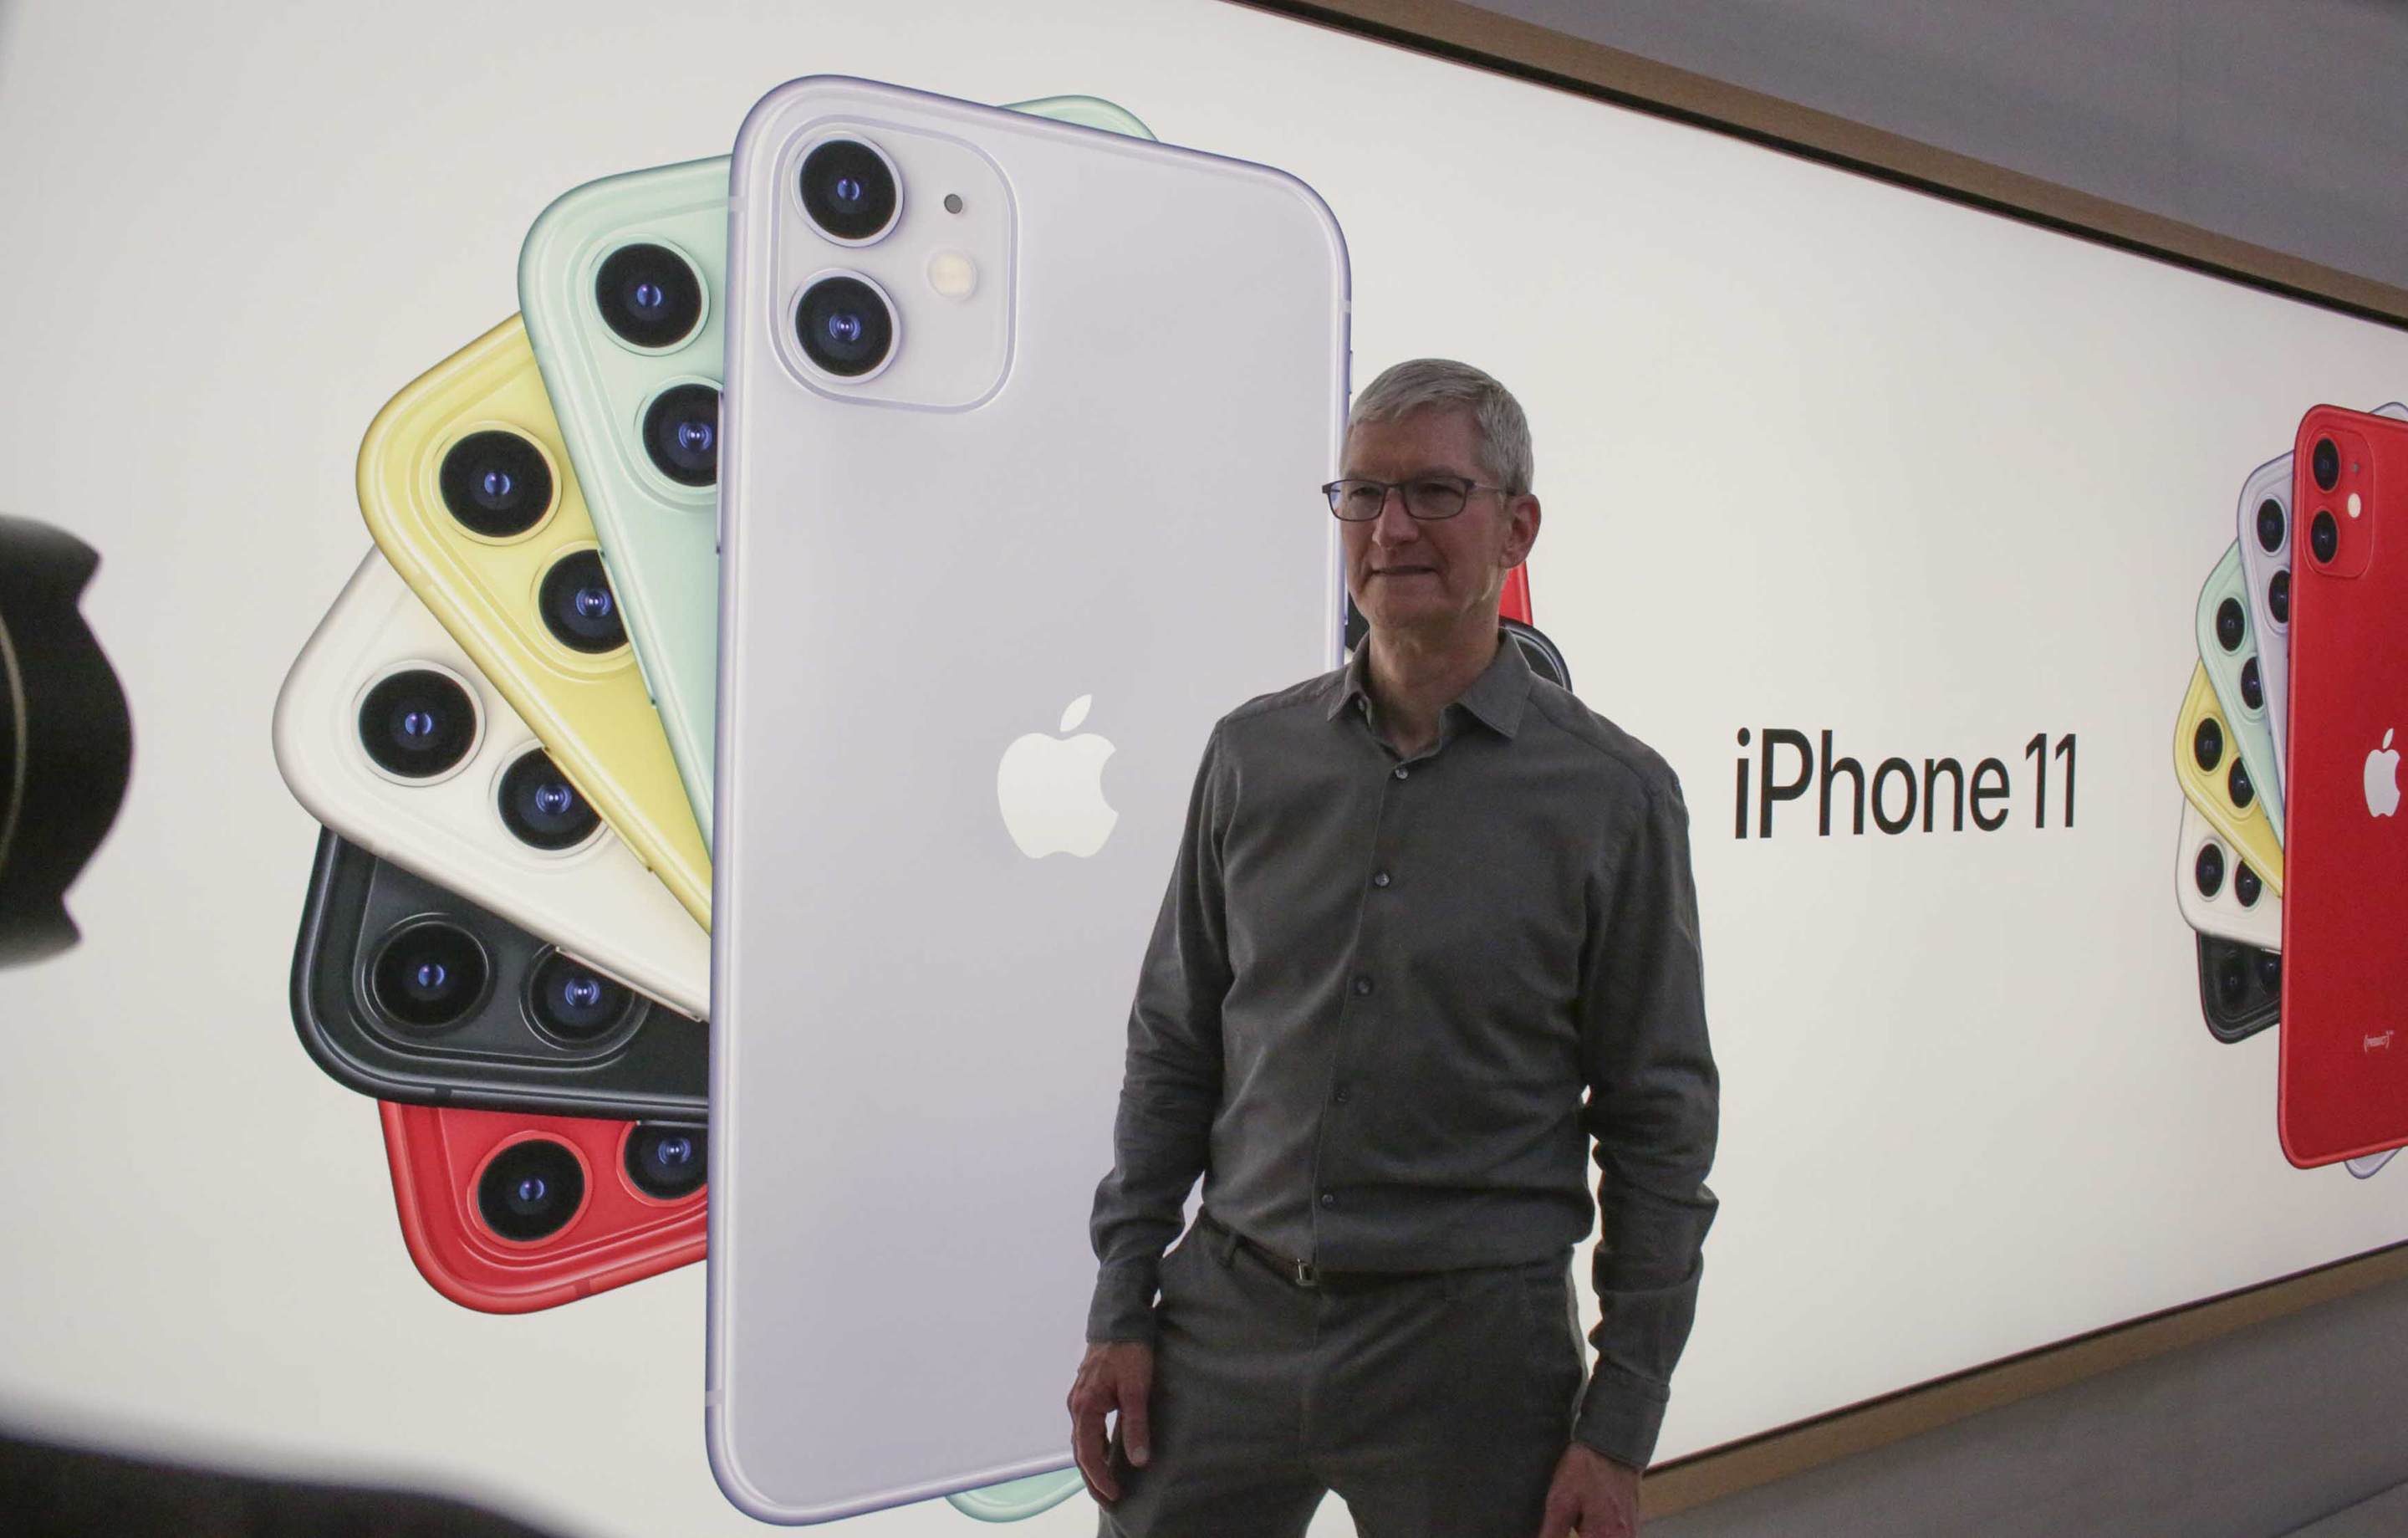 Investors are treating Apple like a growth stock. But the math doesn't add up. thumbnail